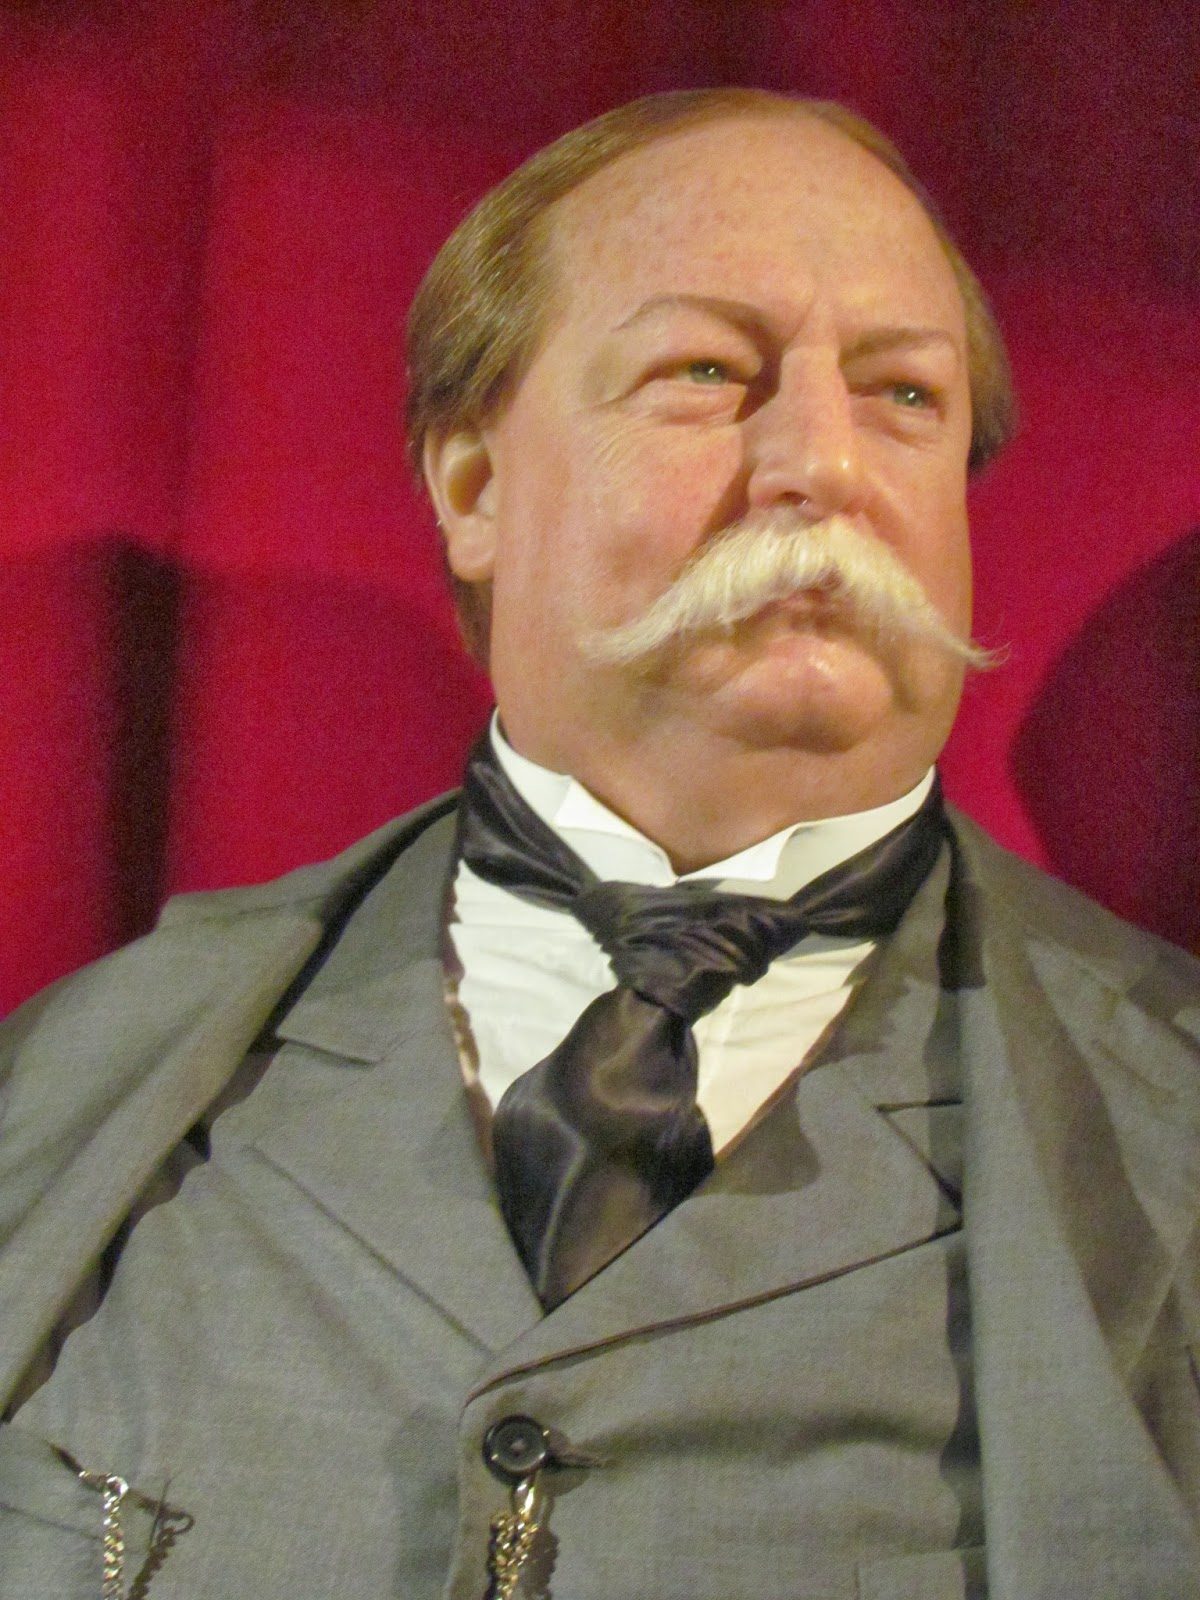 william howard taft William howard taft (1857 - 1930) is famous for being the only person till date to serve as both president and chief justice of the united statestaft held a number of important posts before becoming the 27th president of the united states in 1909.